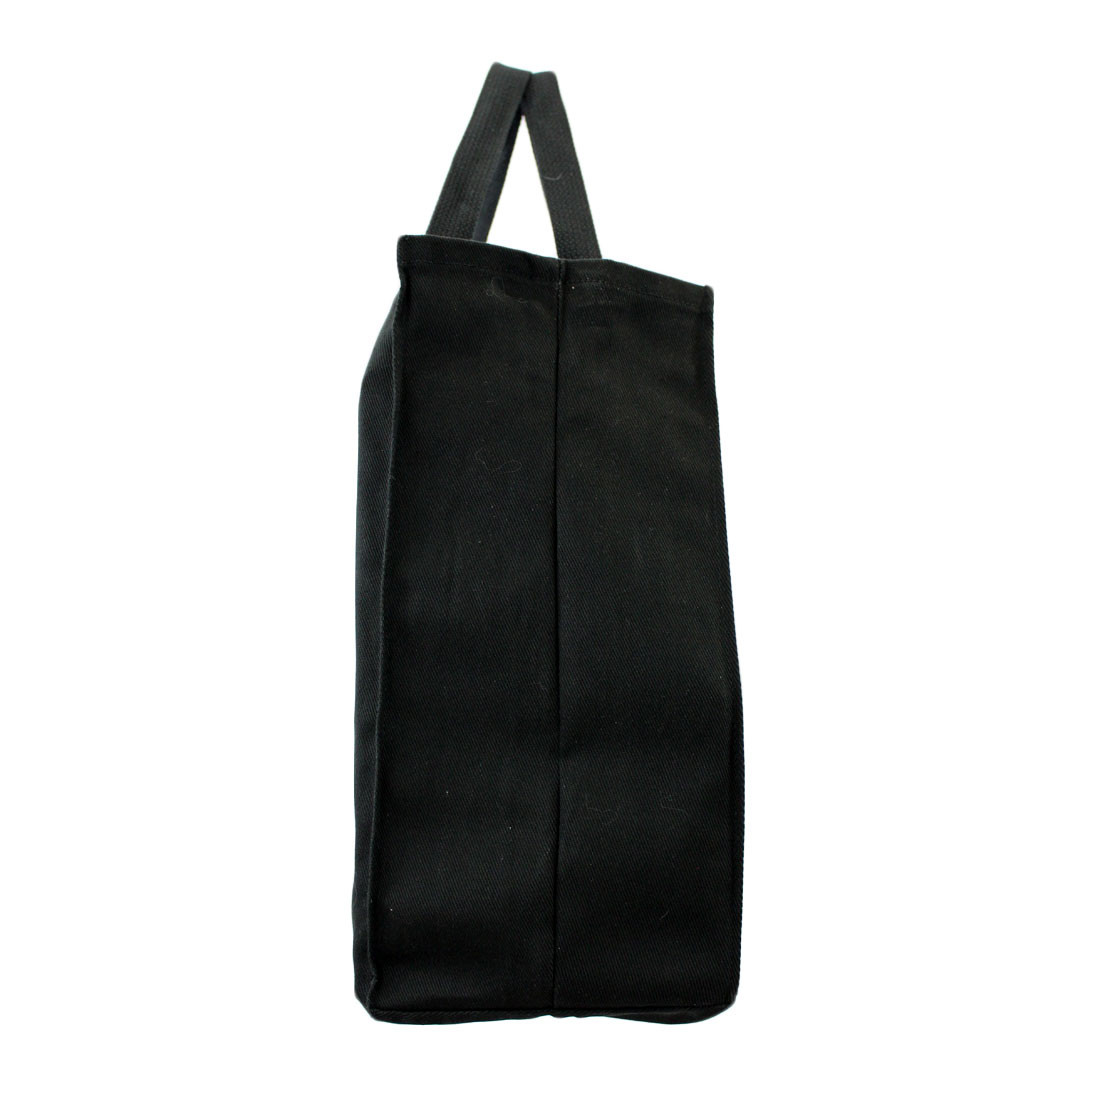 Side view of tote bag.